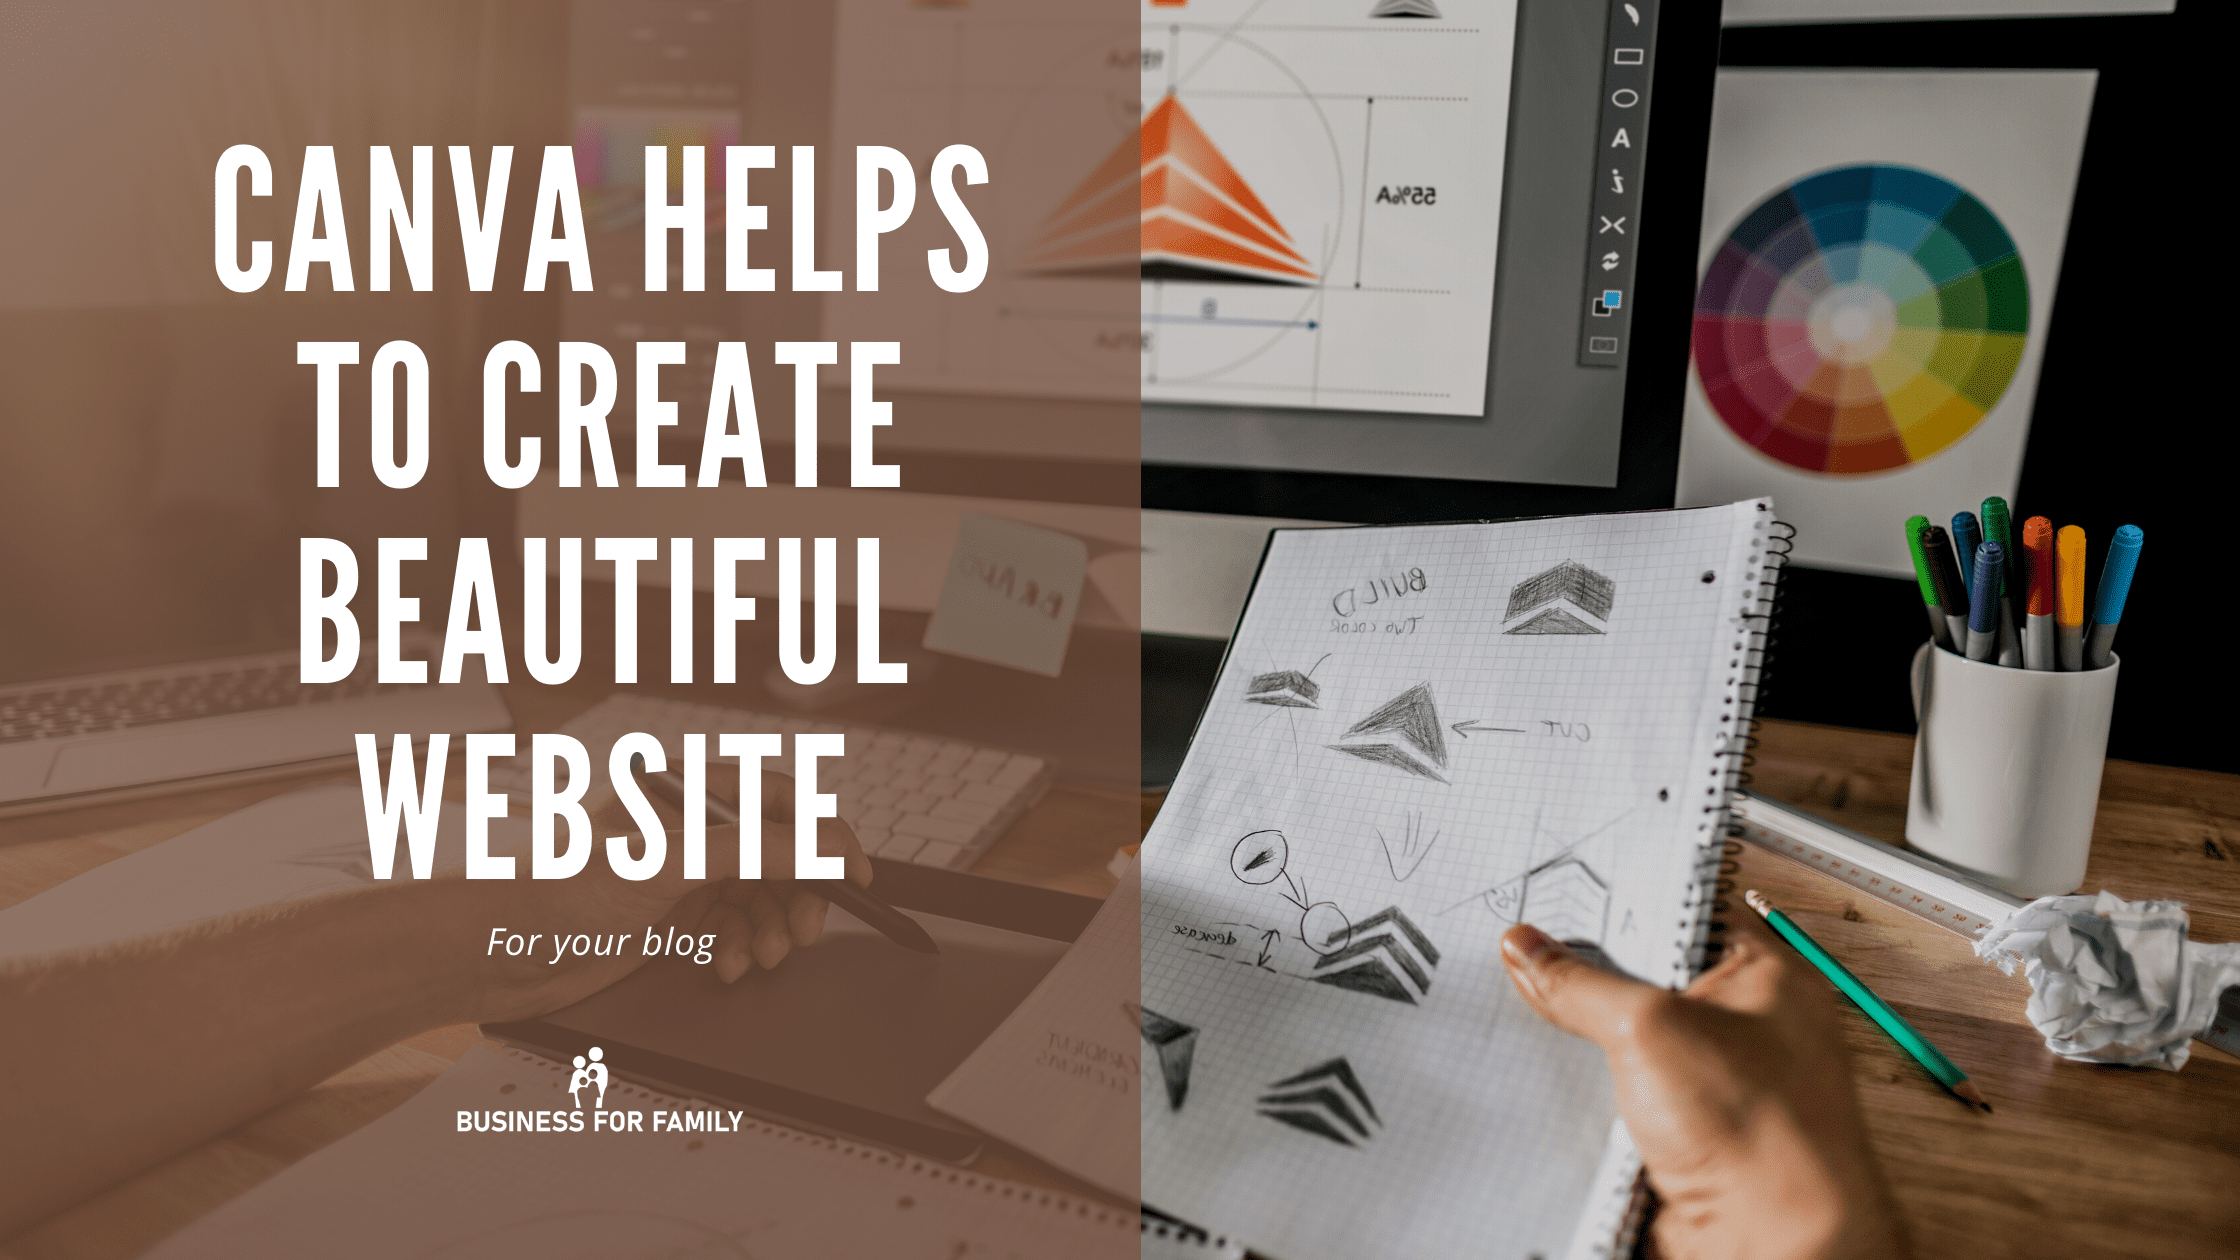 Canva tool that helps to create beautiful website